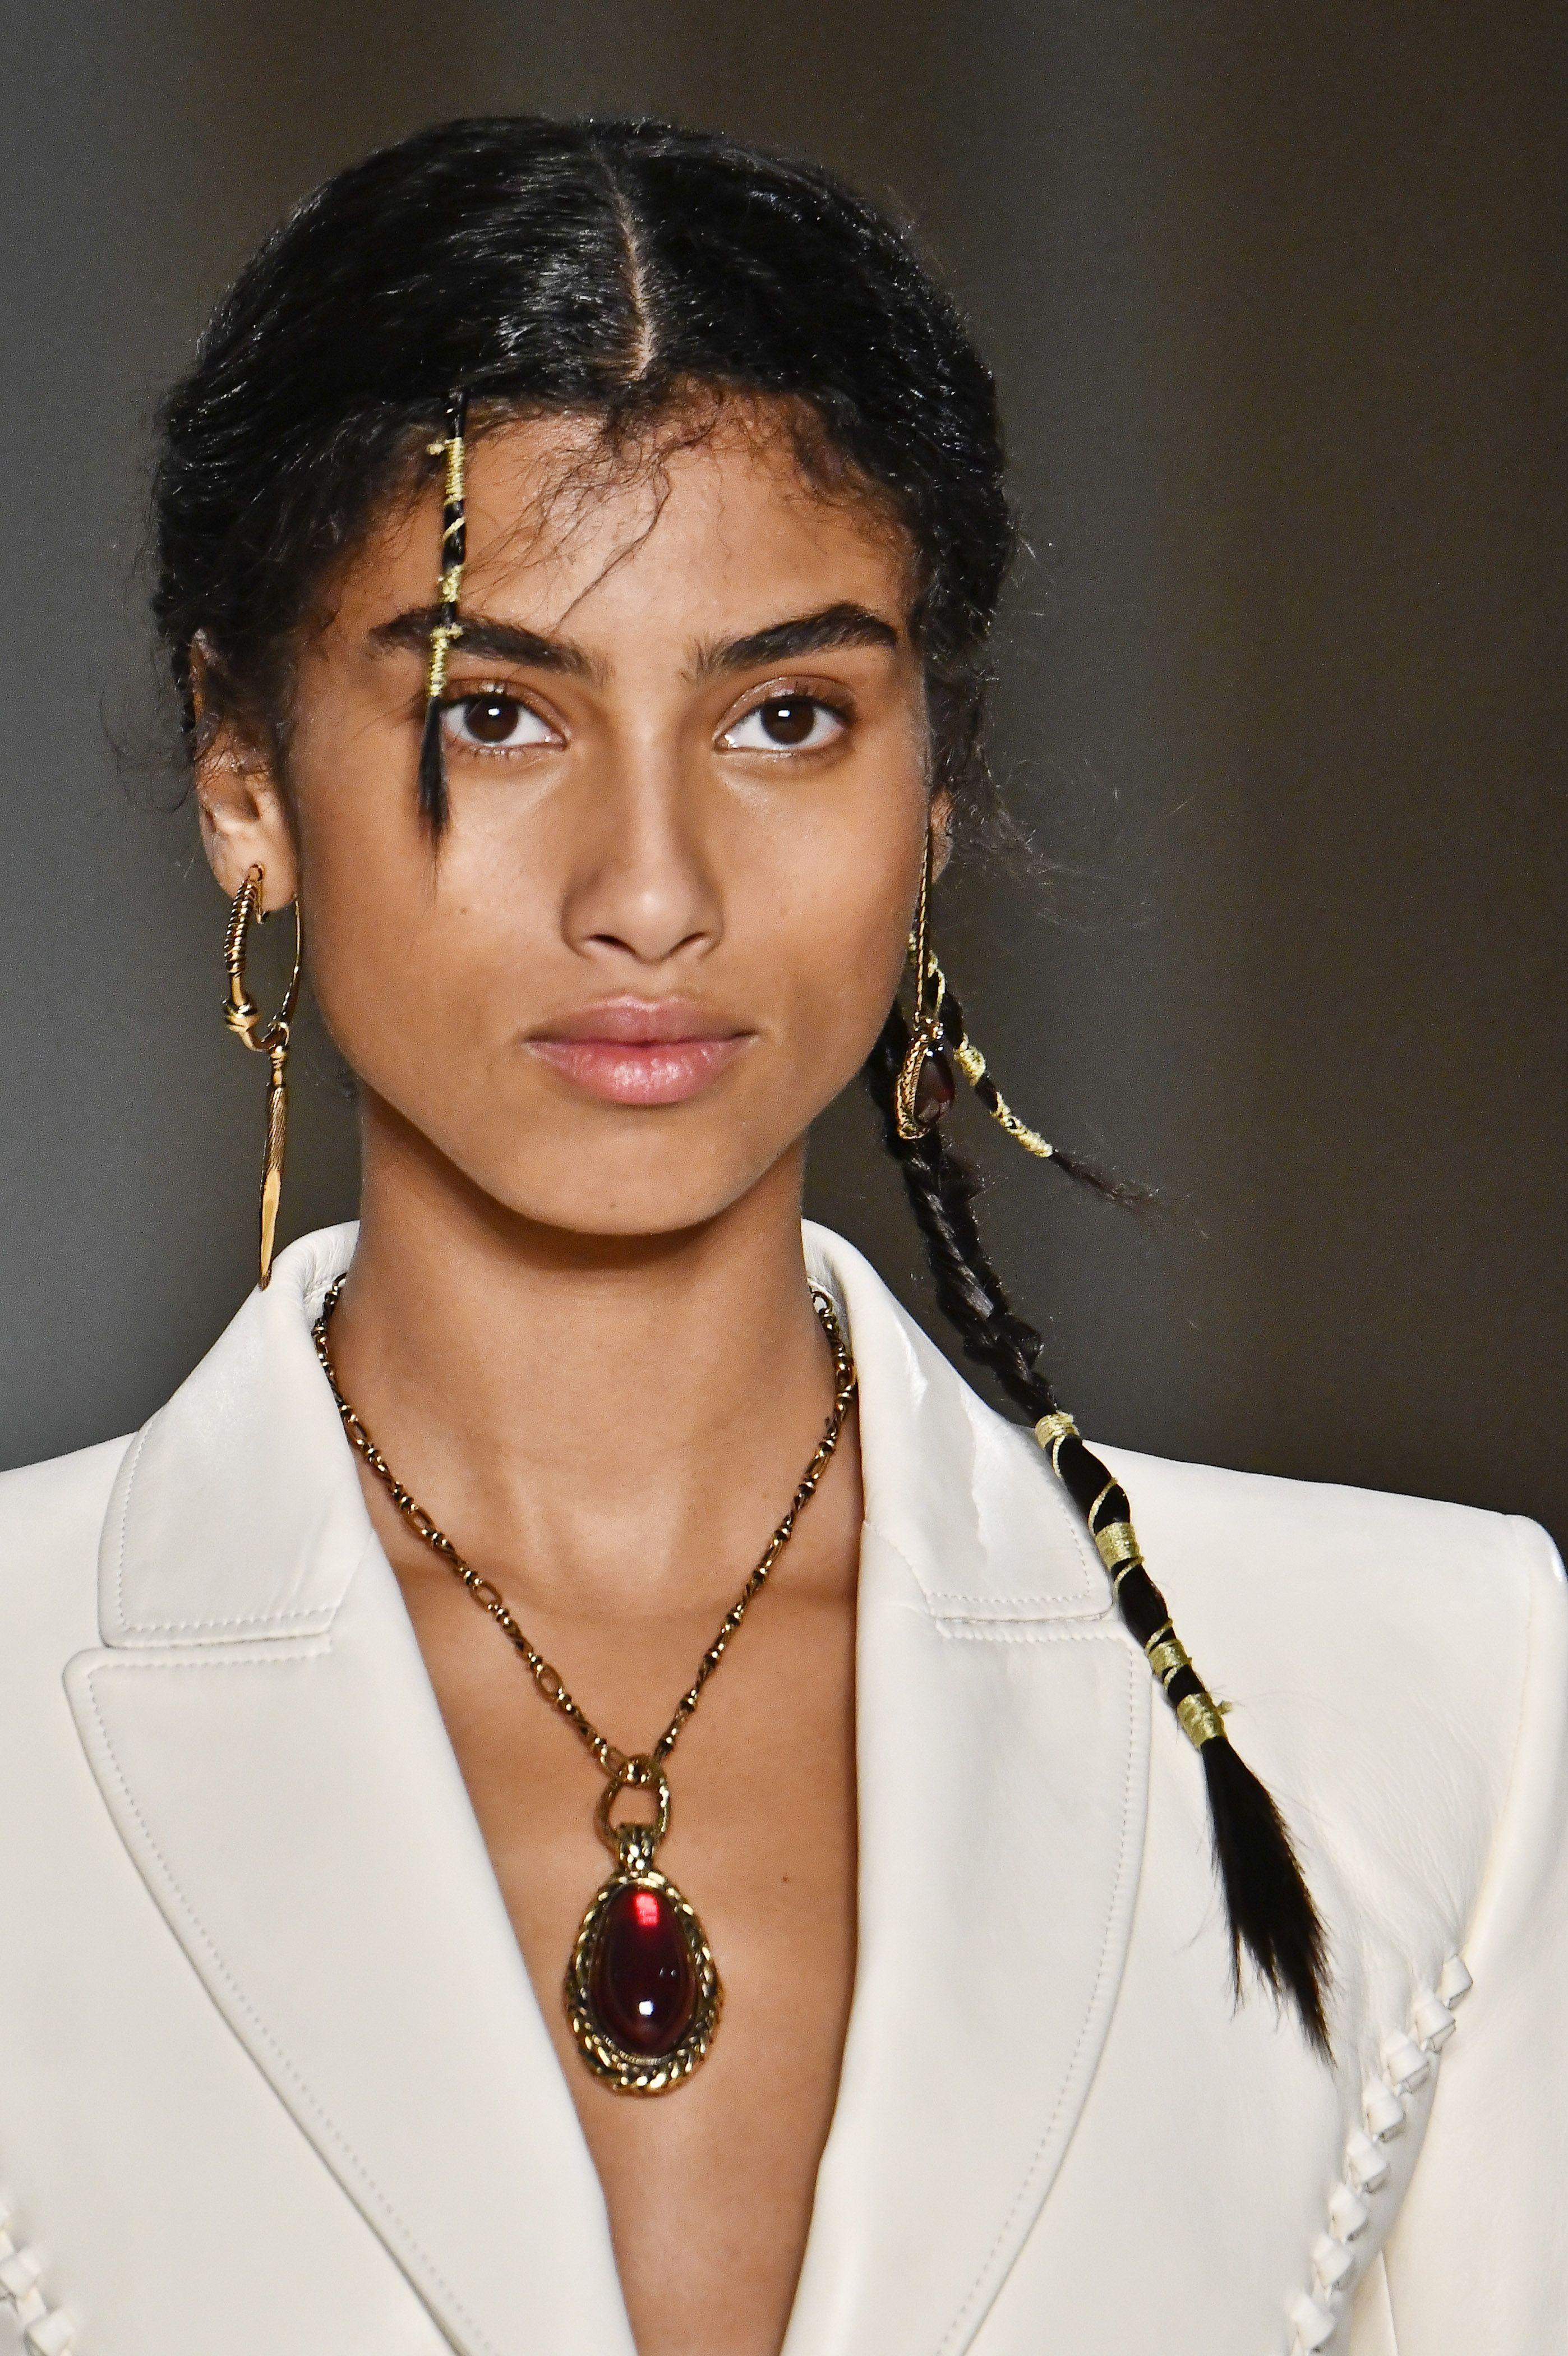 2020 Summer Hair Trends.The Best Hair Looks From The Spring 2020 Runways Spring